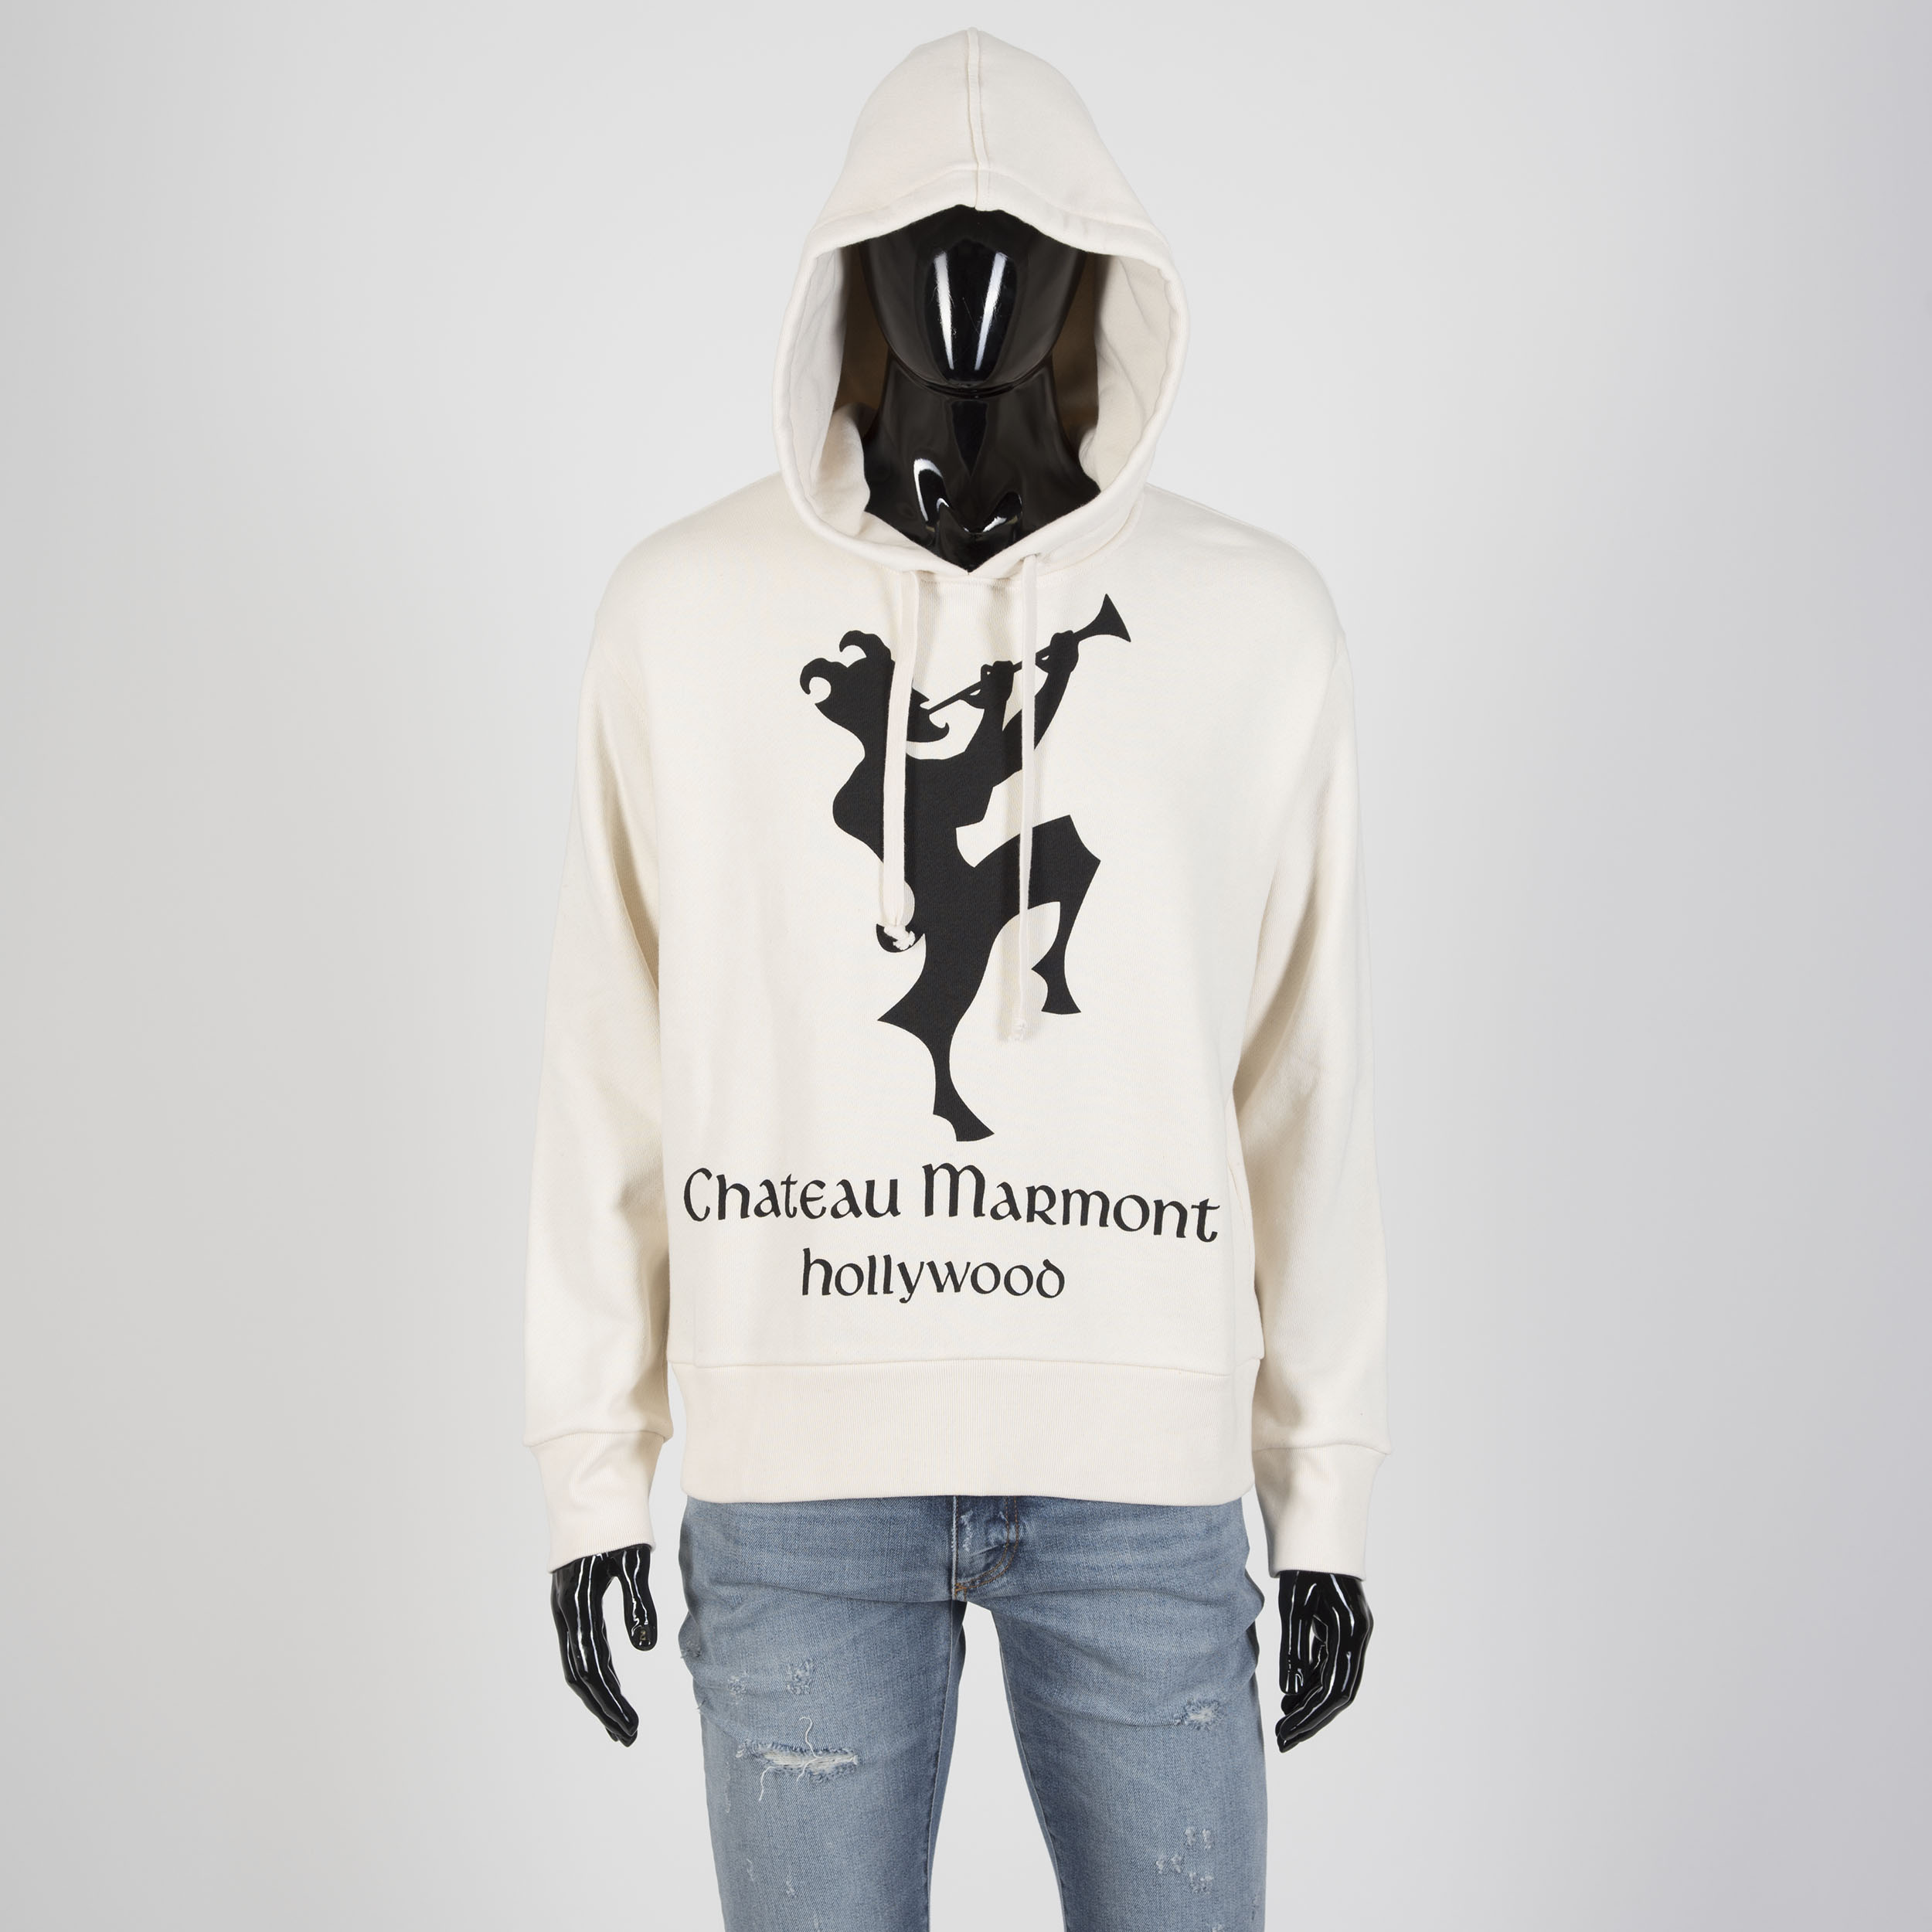 3f1a908c42a9 GUCCI 1400$ Chateau Marmont Hollywood Print Hooded Sweatshirt In Off ...